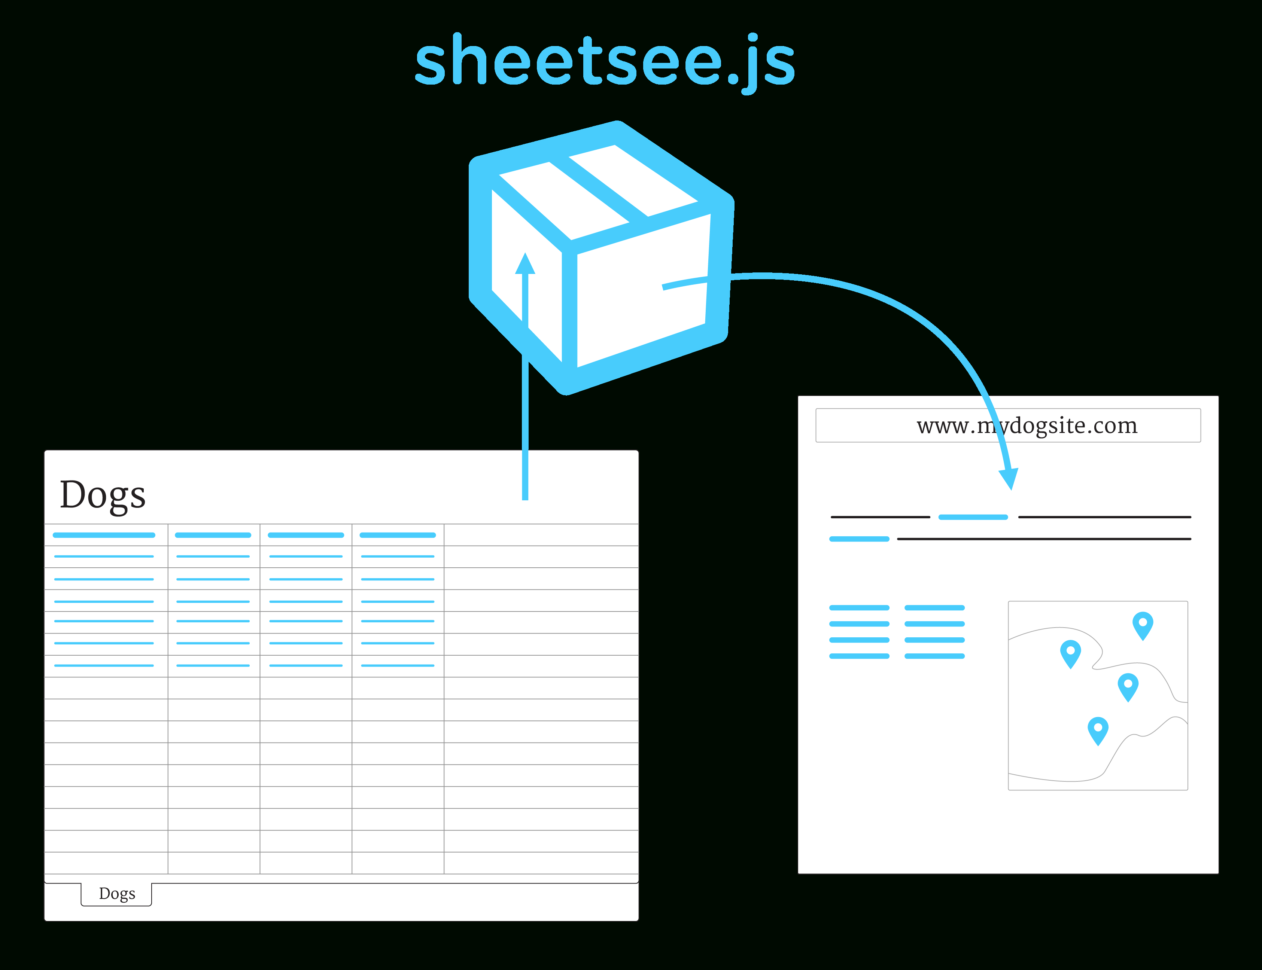 node js spreadsheet library google spreadsheet javascript library javascript spreadsheet library javascript excel spreadsheet library  Javascript Spreadsheet Library In Sheetsee.js Javascript Spreadsheet Library Google Spreadshee